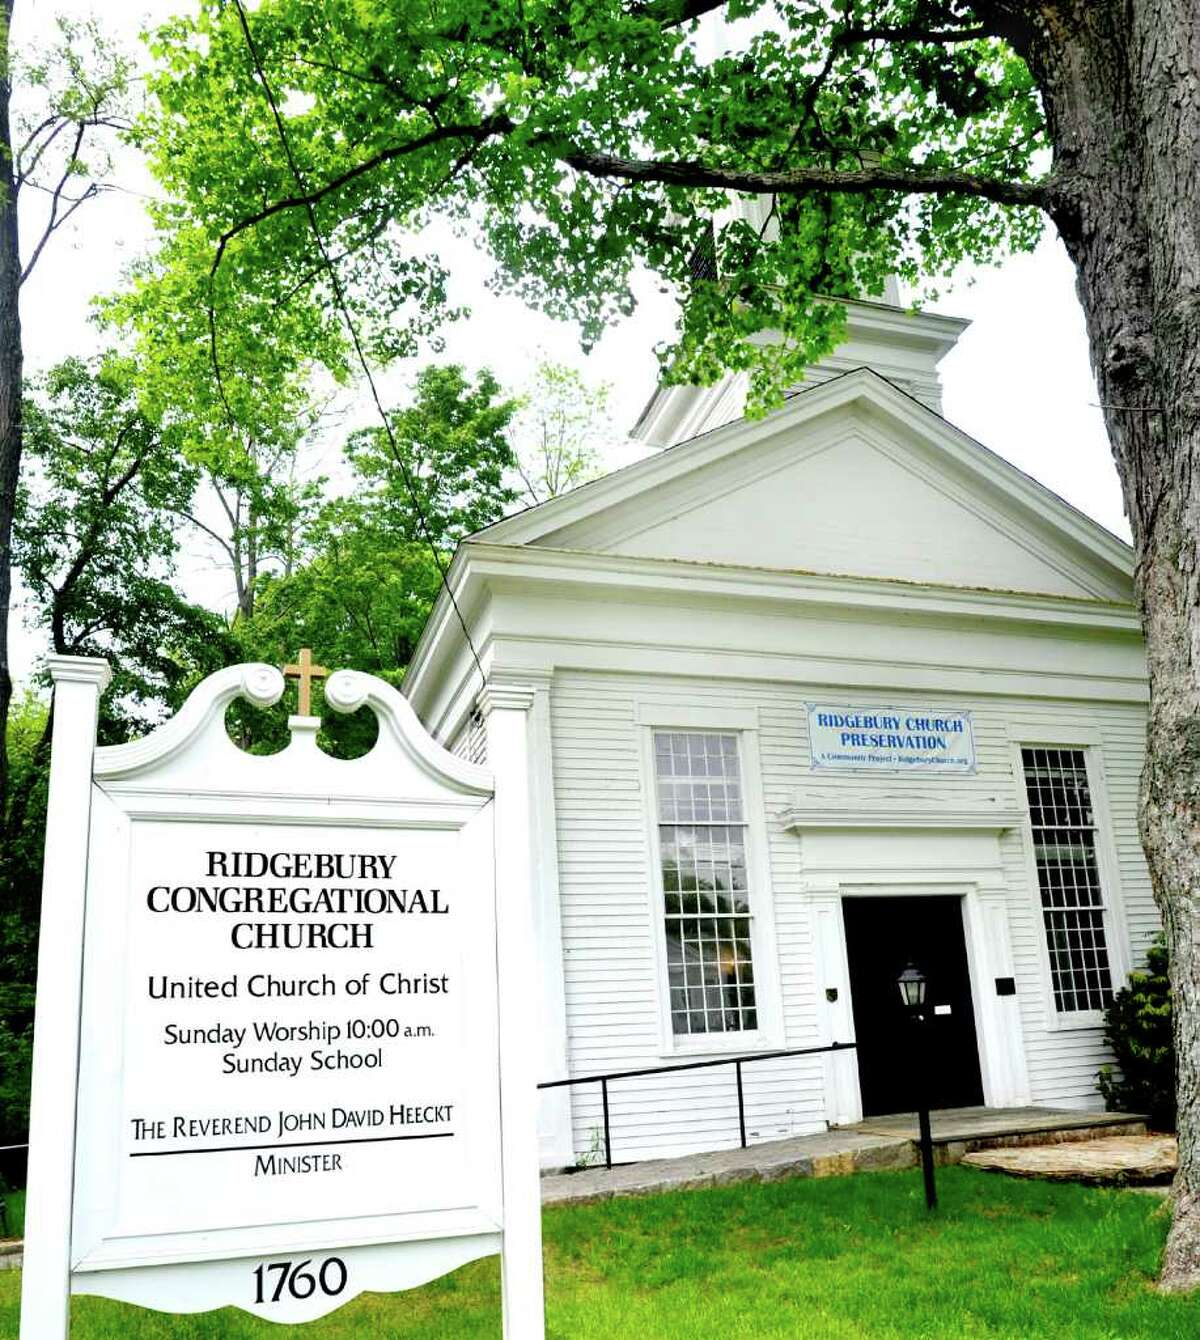 The Ridgebury Congregational Church in Ridgefield,is shown photographed Thursday, May 26, 2011.